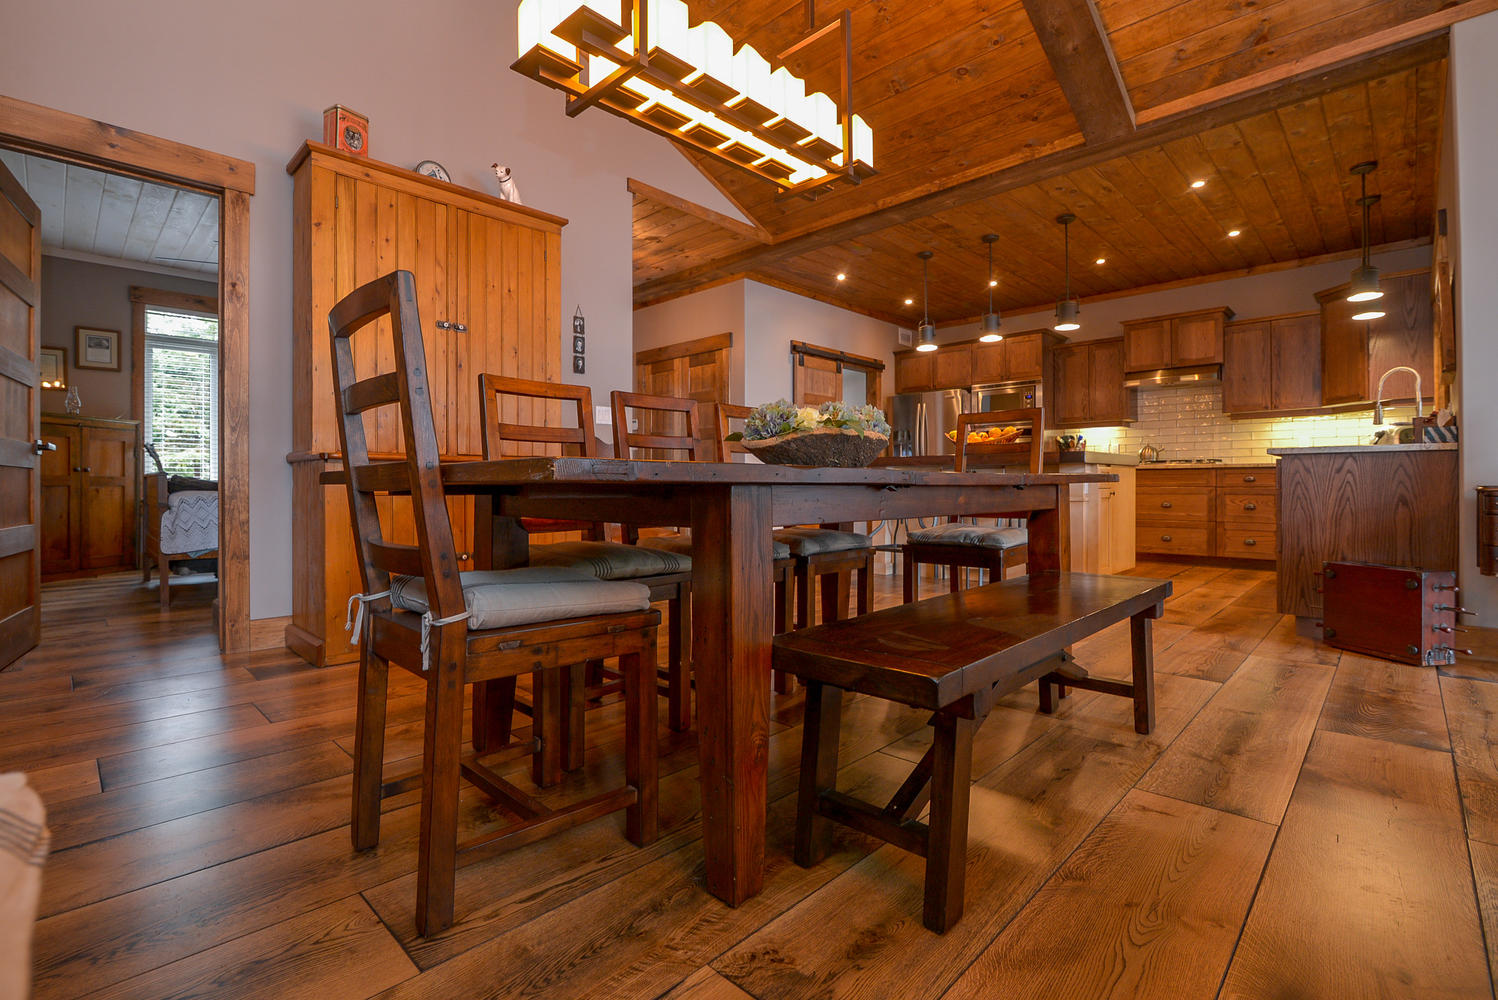 Pictures of Wide plank white oak flooring in a full kitchen